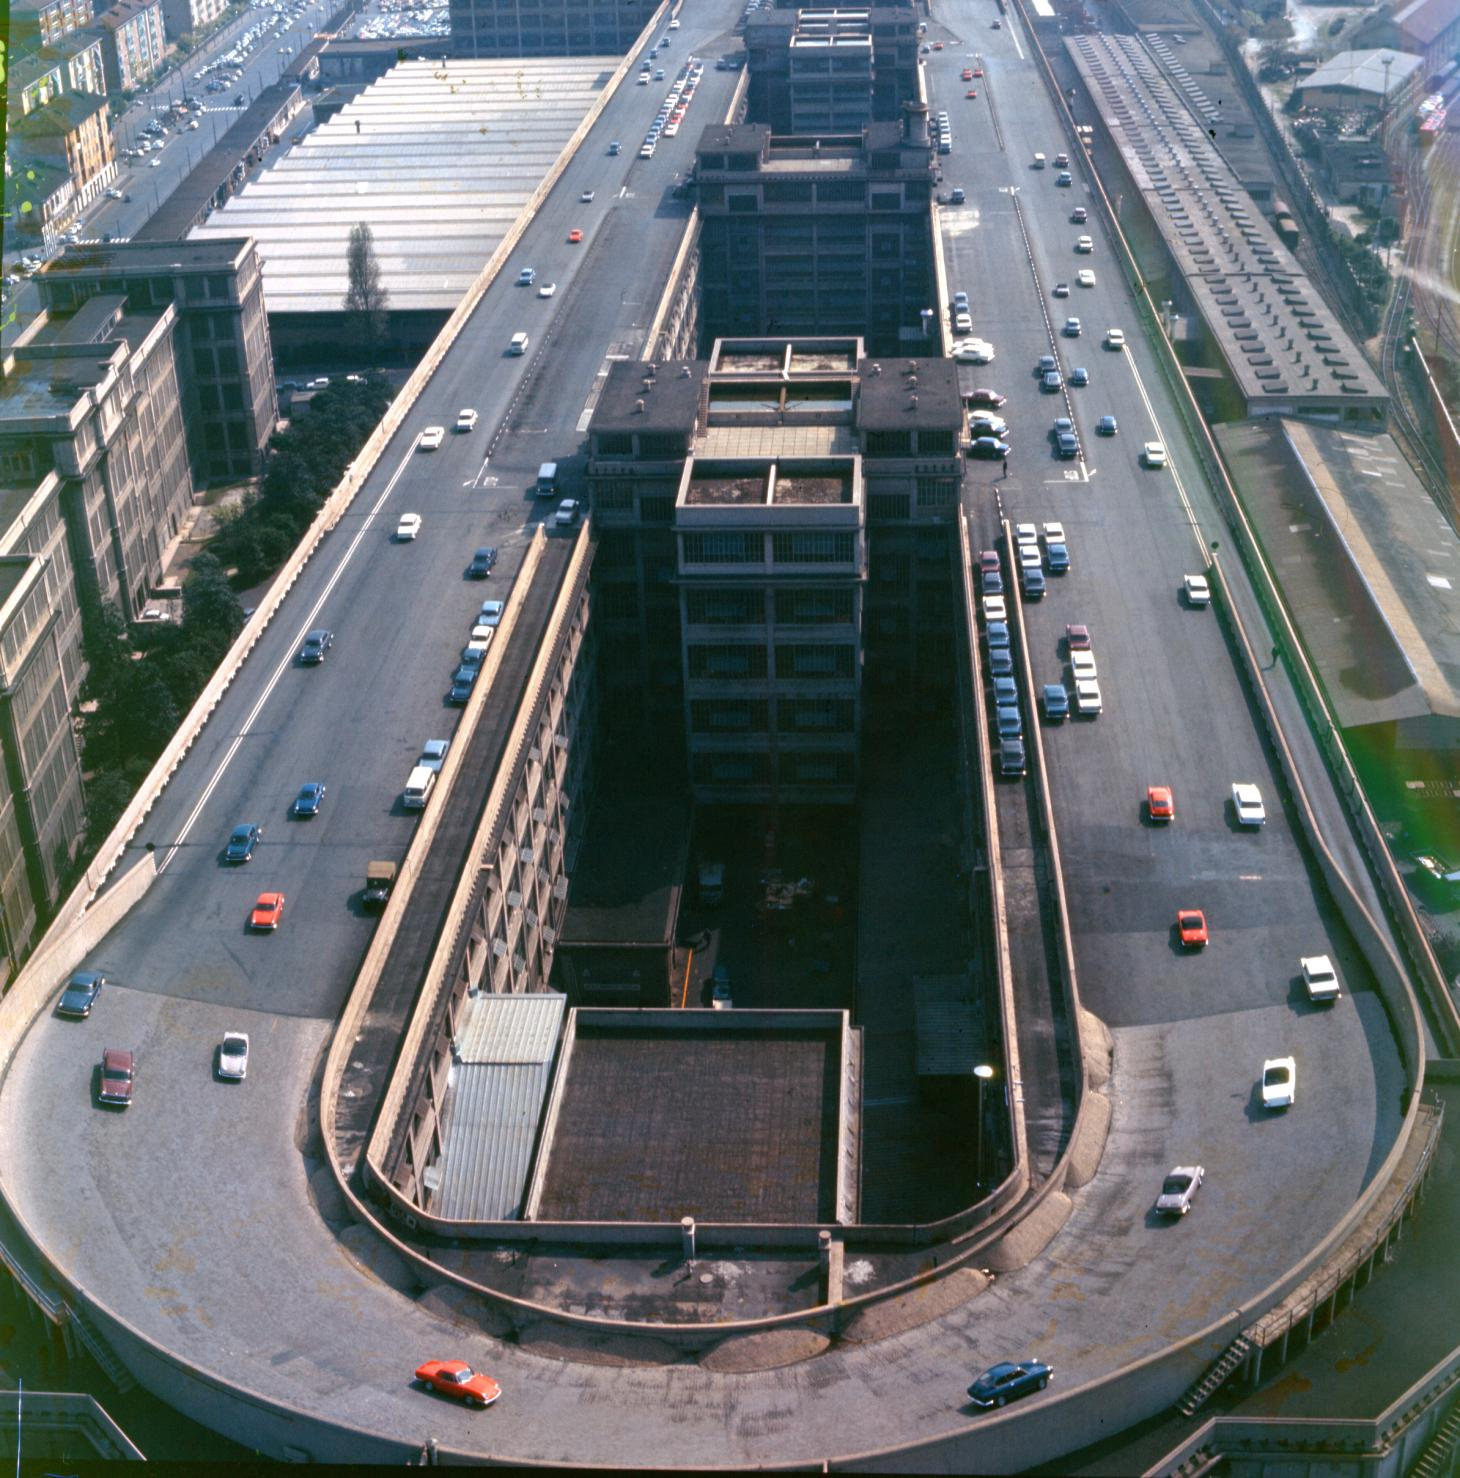 The Lingotto factory test track pictured in 1966